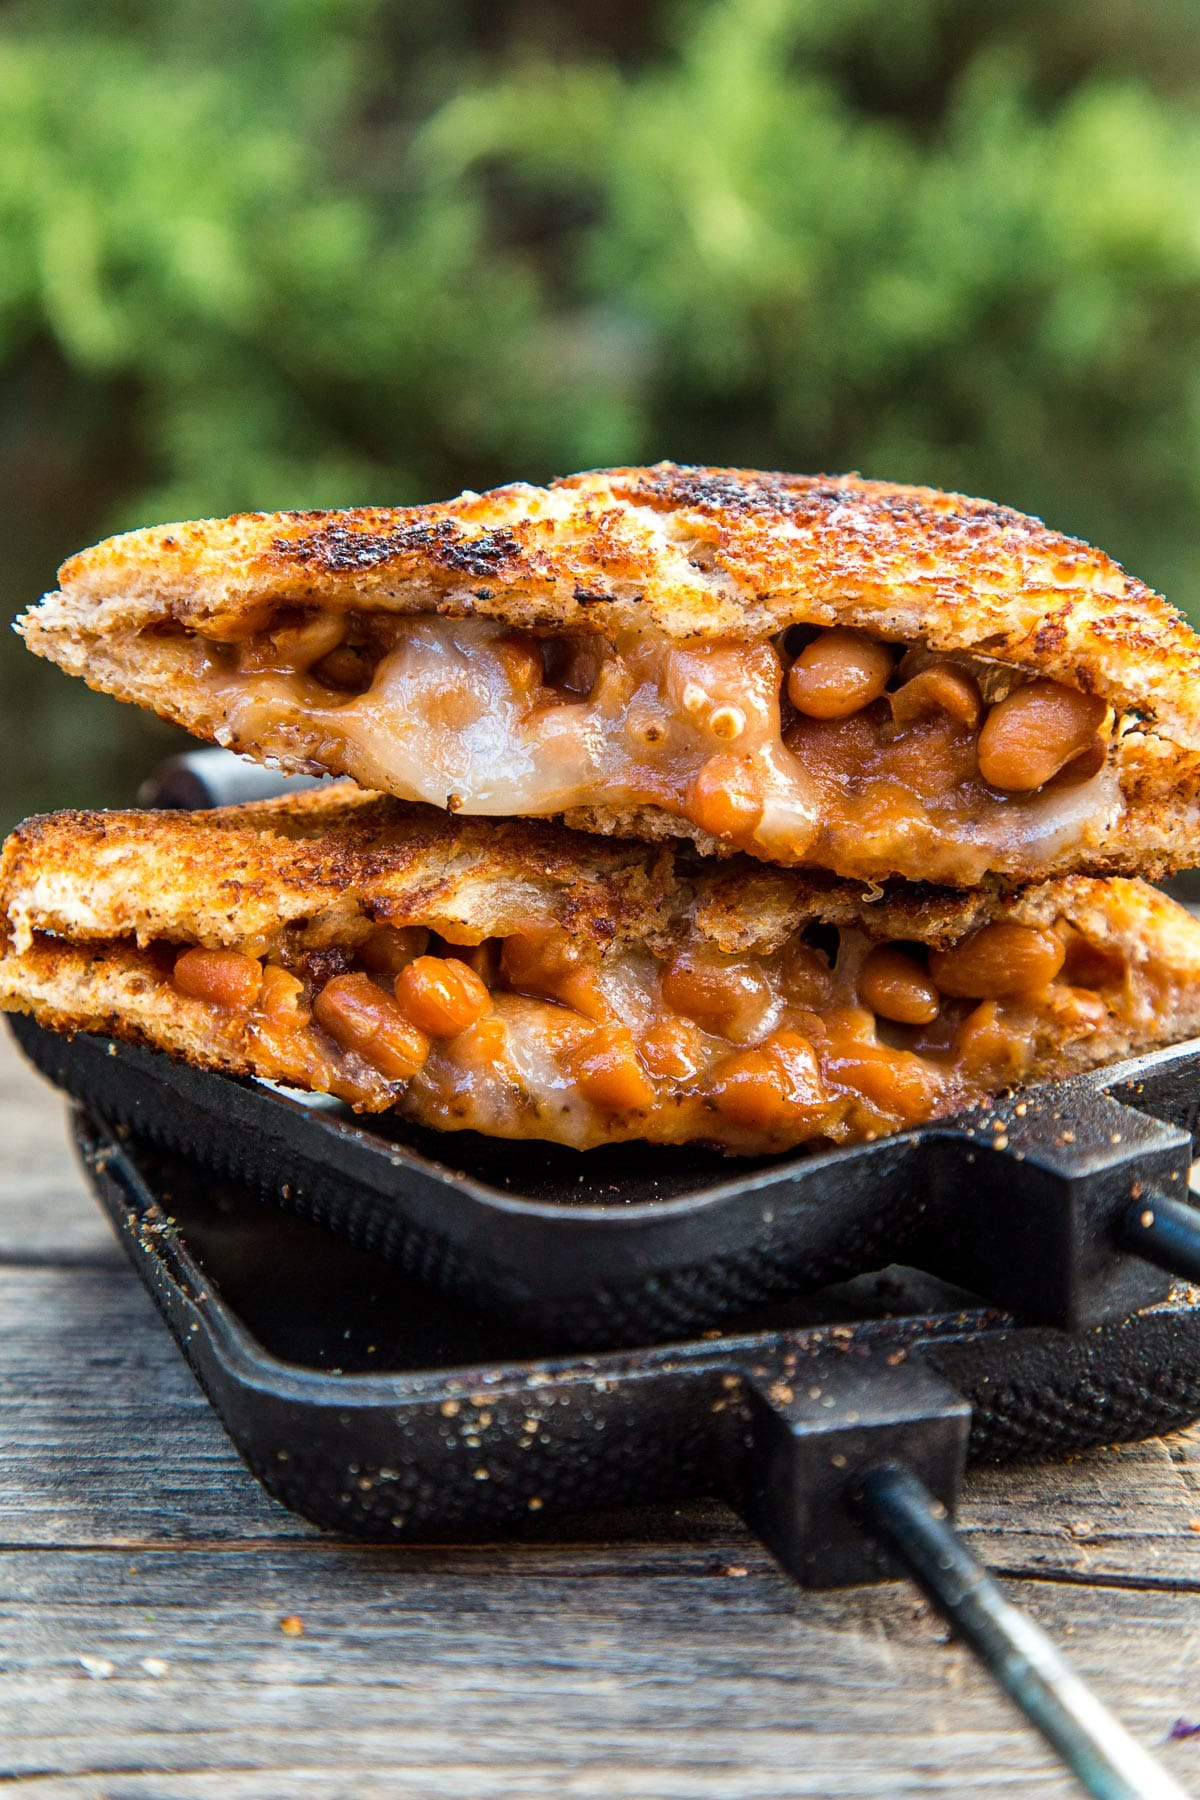 A sandwich filled with beans and cheese cut diagonally in half, resting on an open pie iron